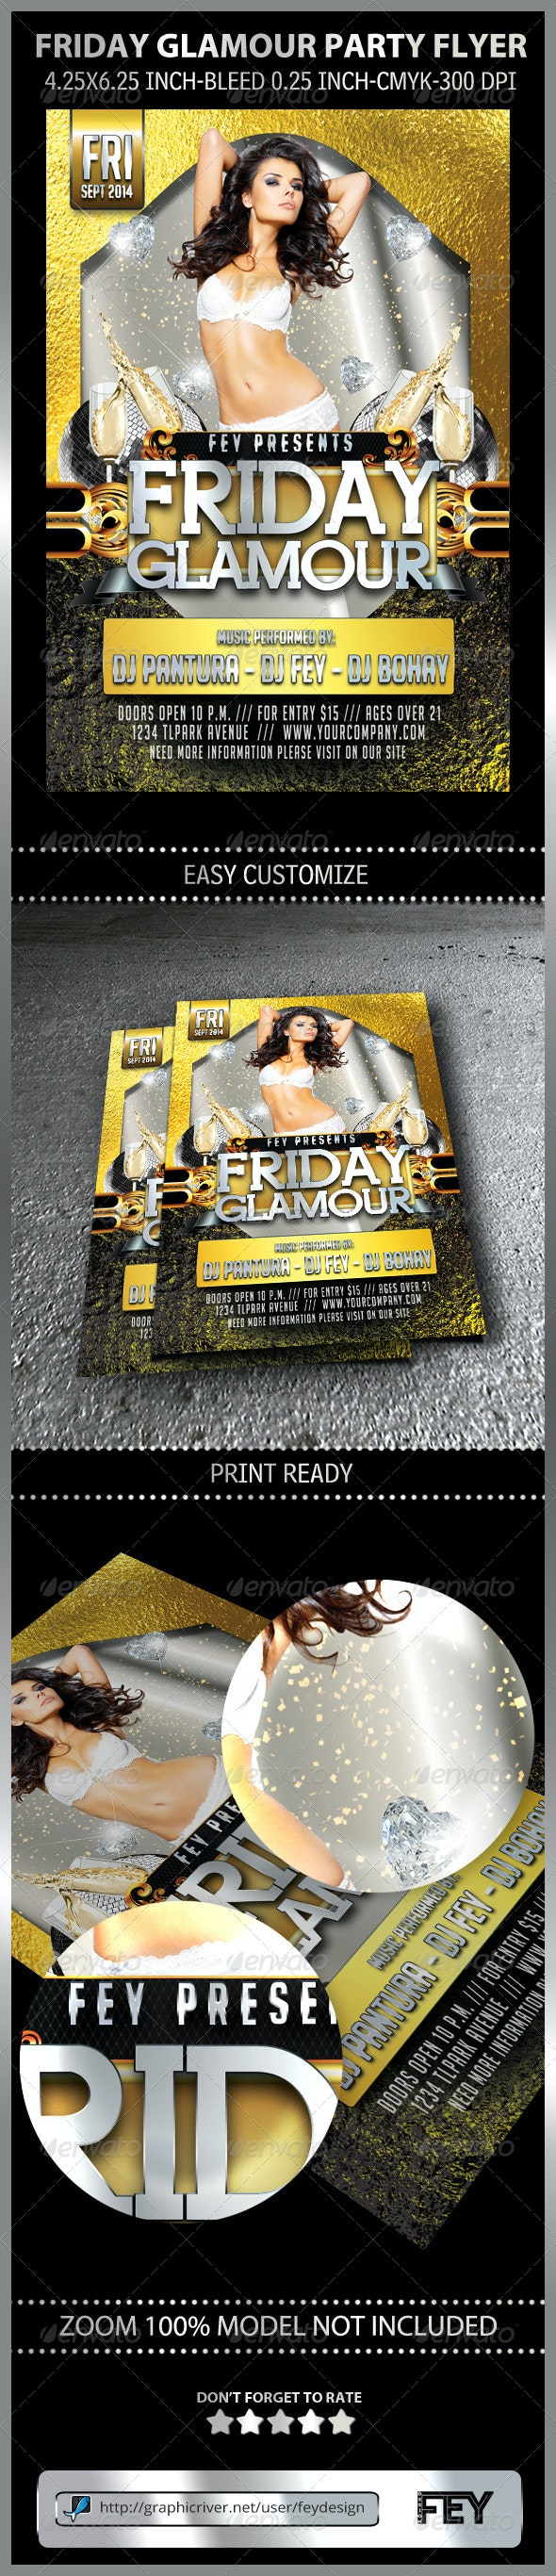 Friday Glamour Party Flyer - Clubs & Parties Events